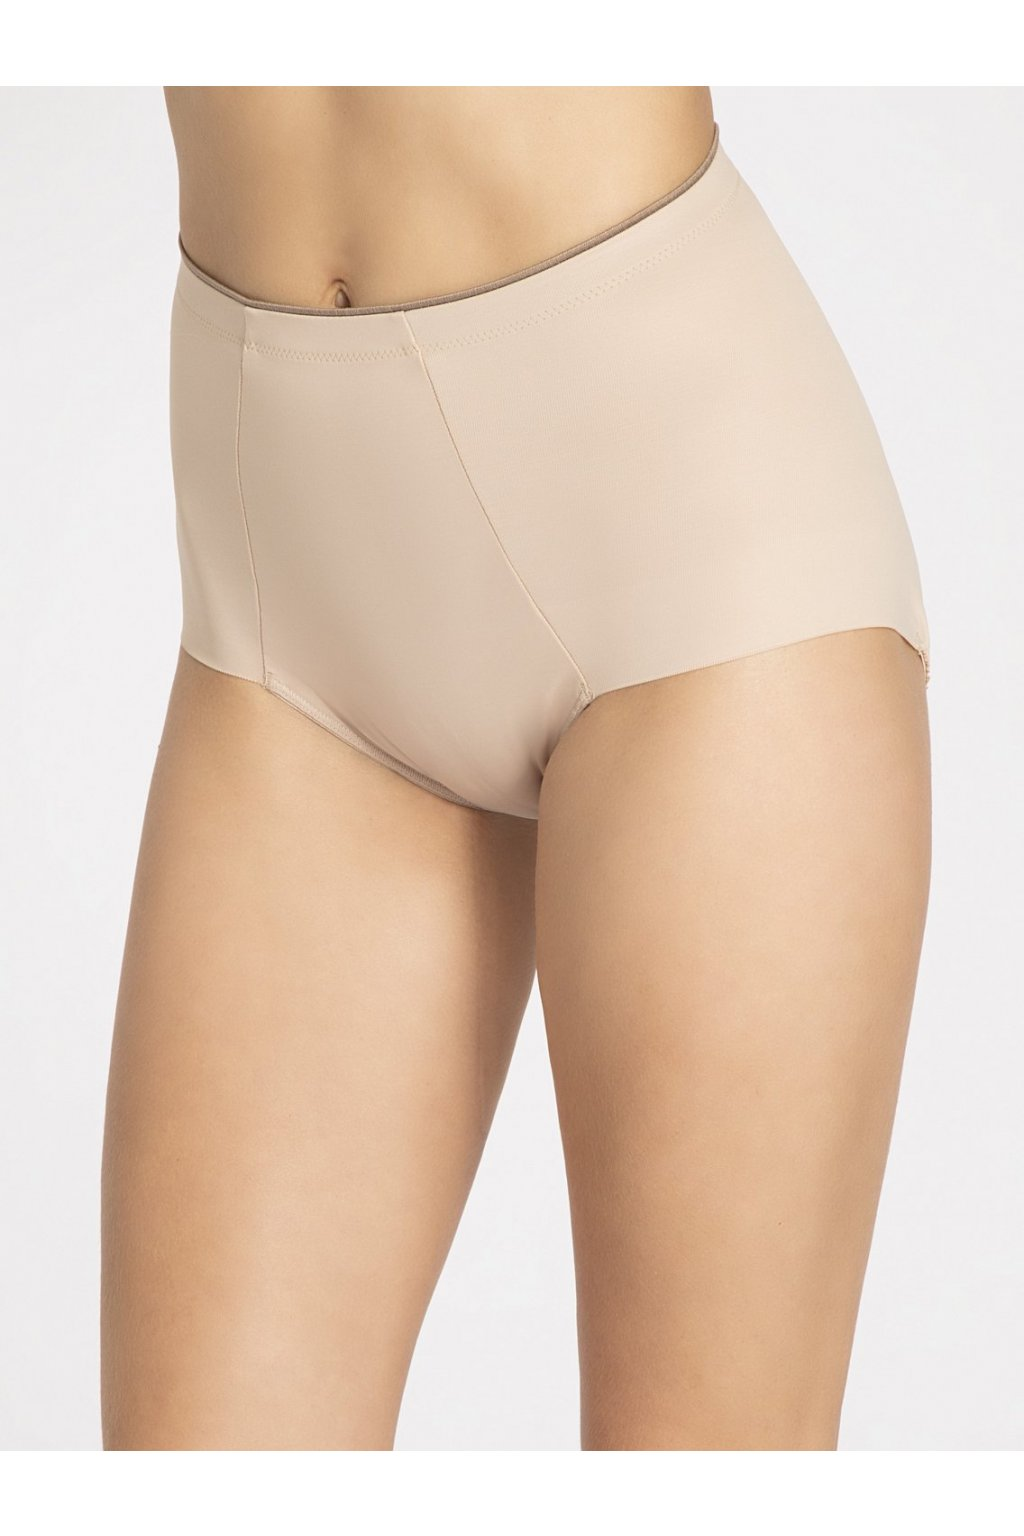 Felina Conturelle Slimming Biefs 88322 Soft Touch 34 sand front